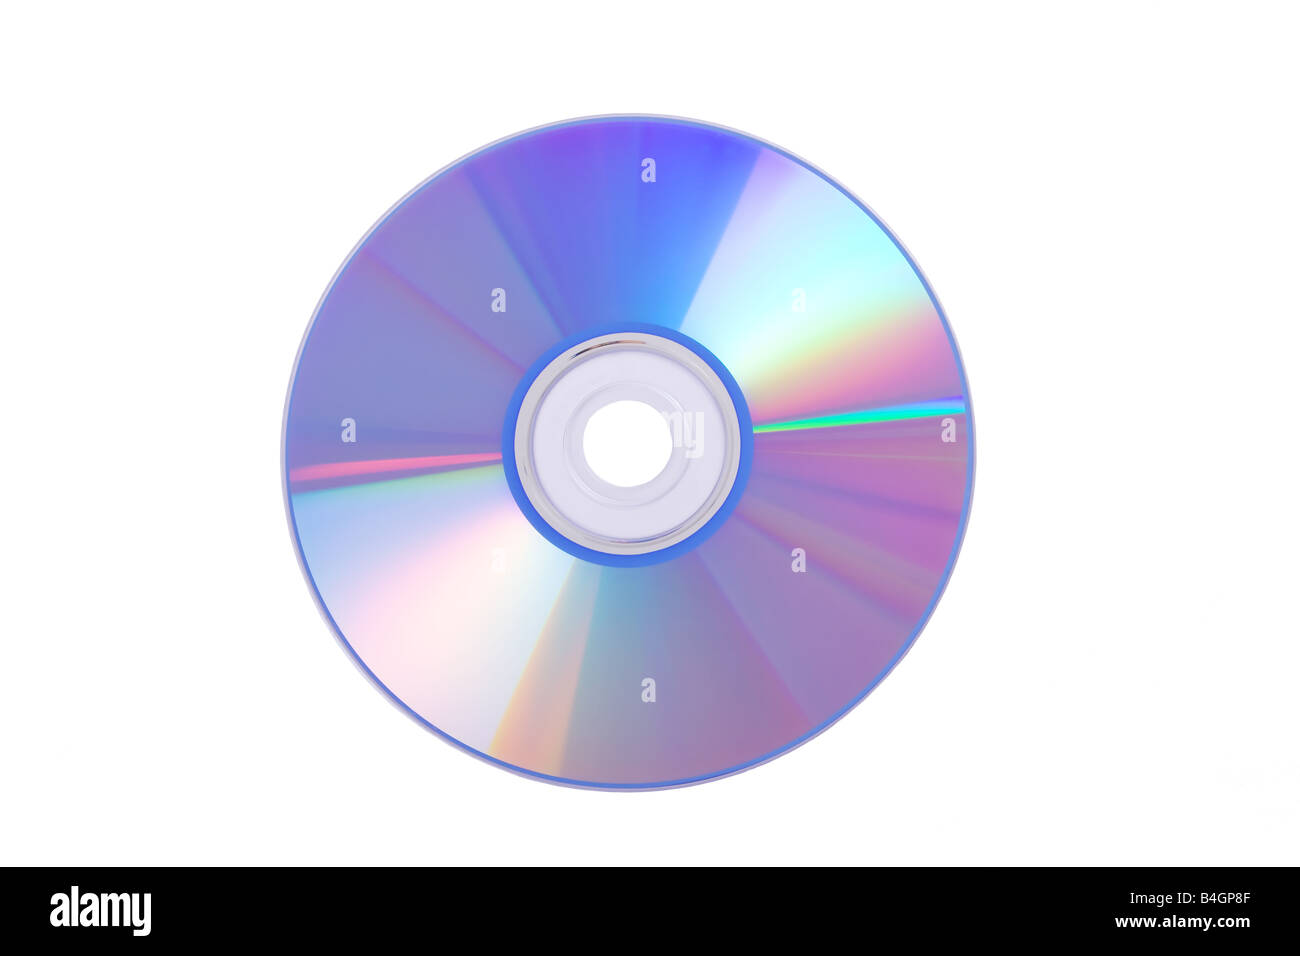 Blue DVD/CD/Blu-ray isolated on a white background - Stock Image